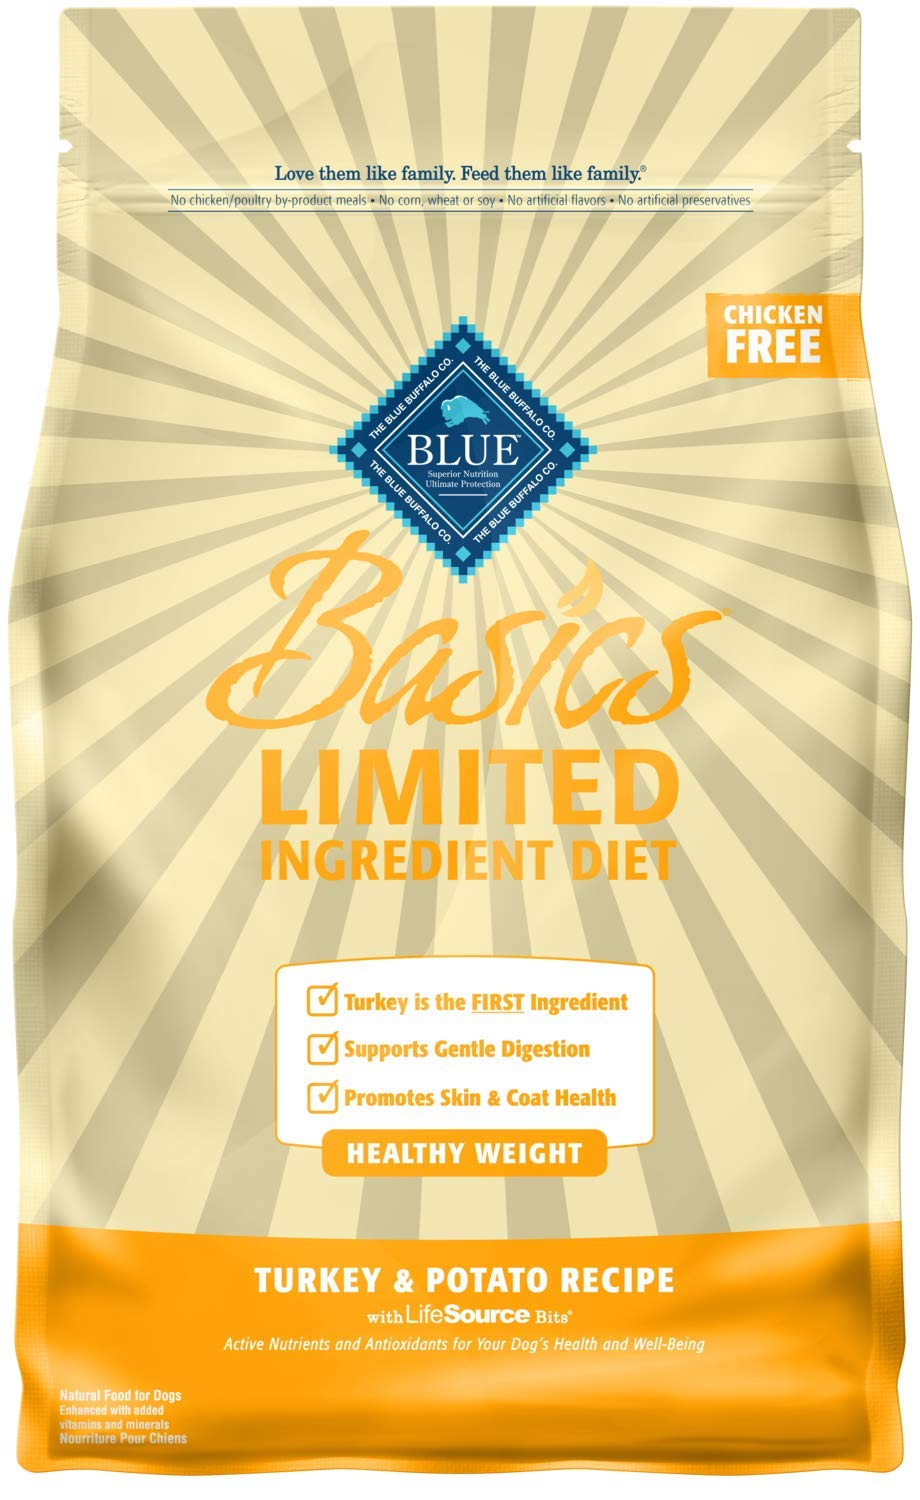 Blue Buffalo Basics Limited Ingredient Diet, Natural Adult Healthy Weight Dry Dog Food, Turkey & Potato 4-lb by Blue Buffalo